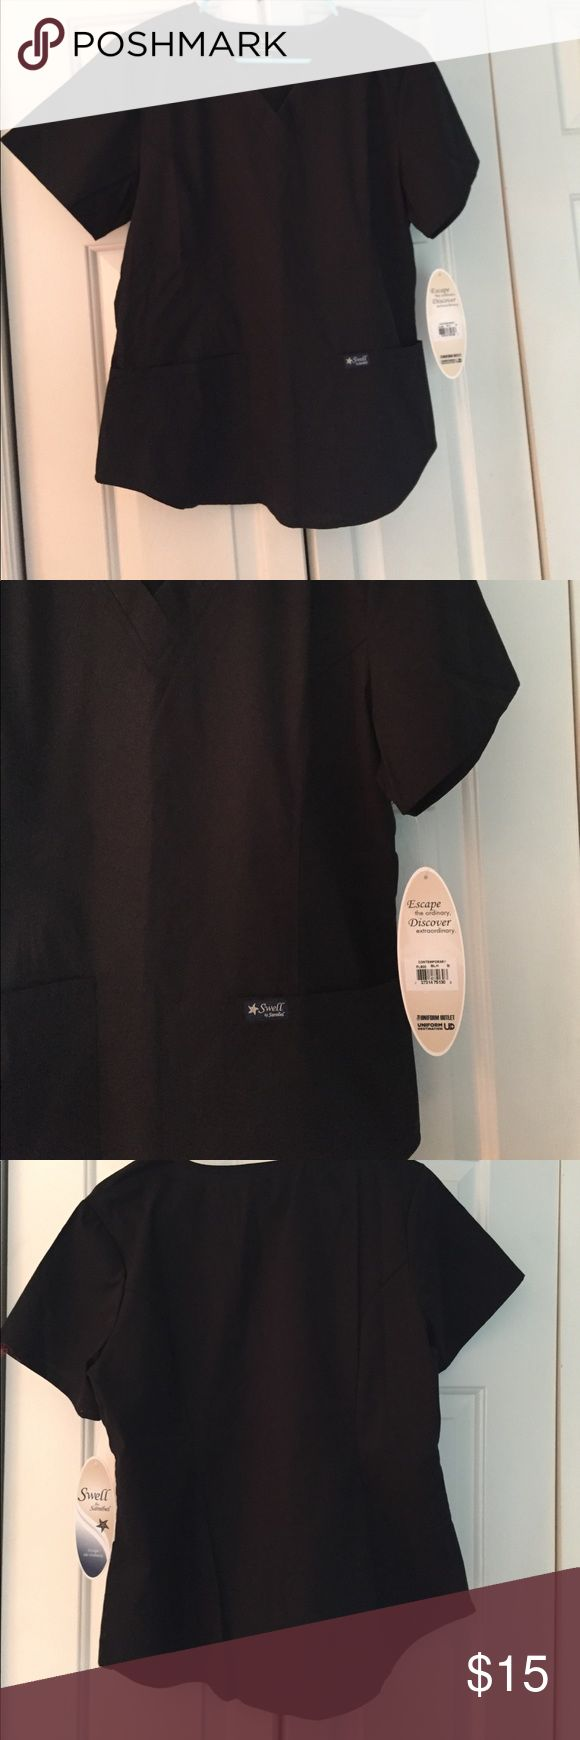 NWT Black Swell by Sanibel Scrub Top New with tags! Beautiful scrub top by Sanibel's new line - Swell. FLATTERING cut!!! Please don't hesitate with any questions and/or offers! Happy Poshing!!! 💝🛍 Sanibel Tops